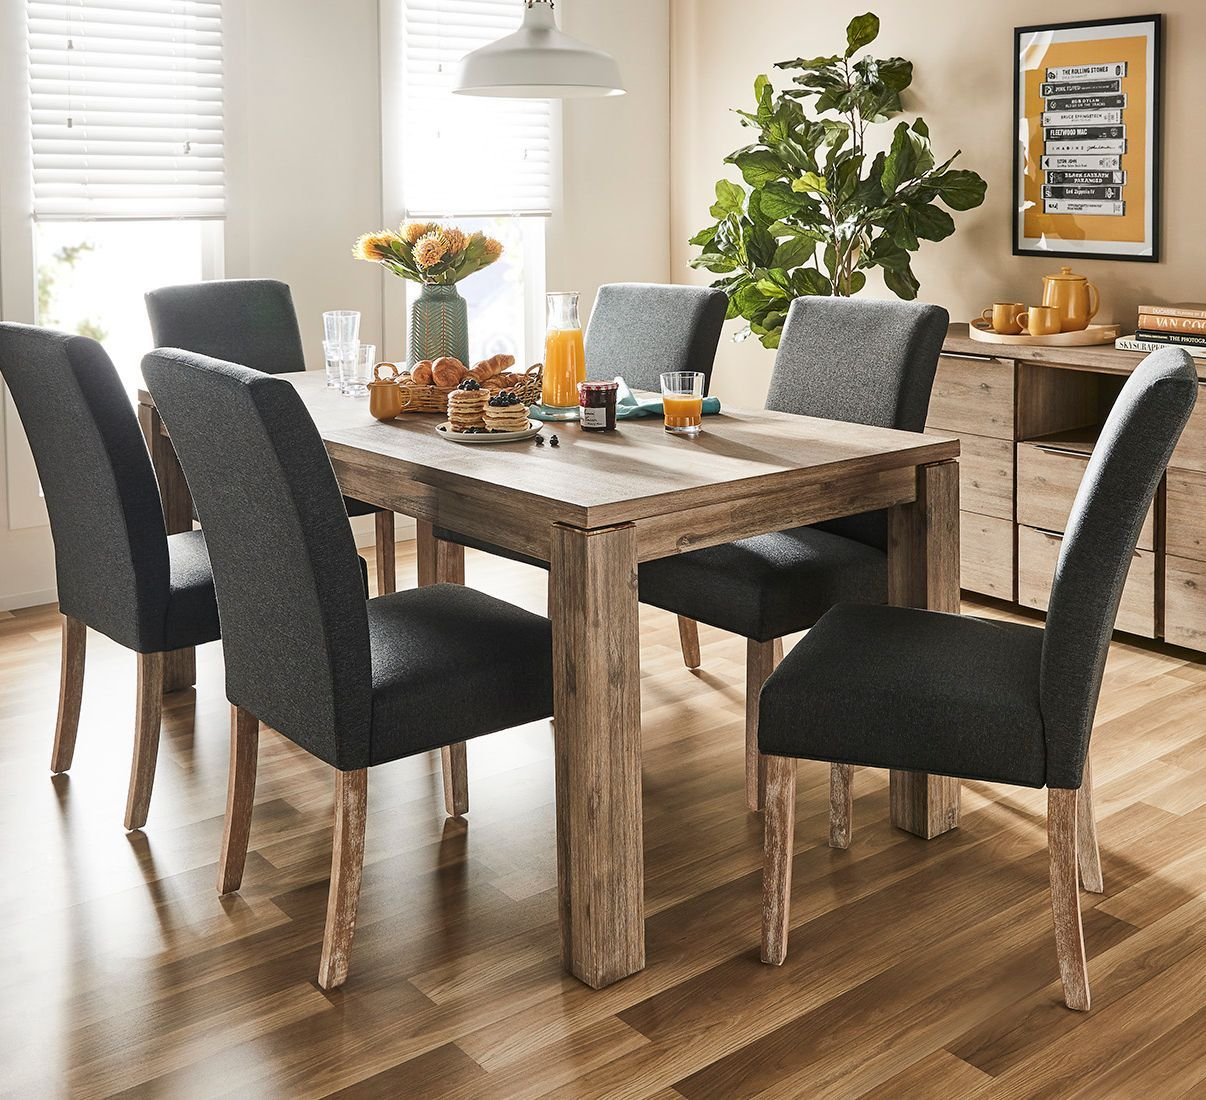 Wood look Dining Table Set with Upholstered Chairs   Dining ...